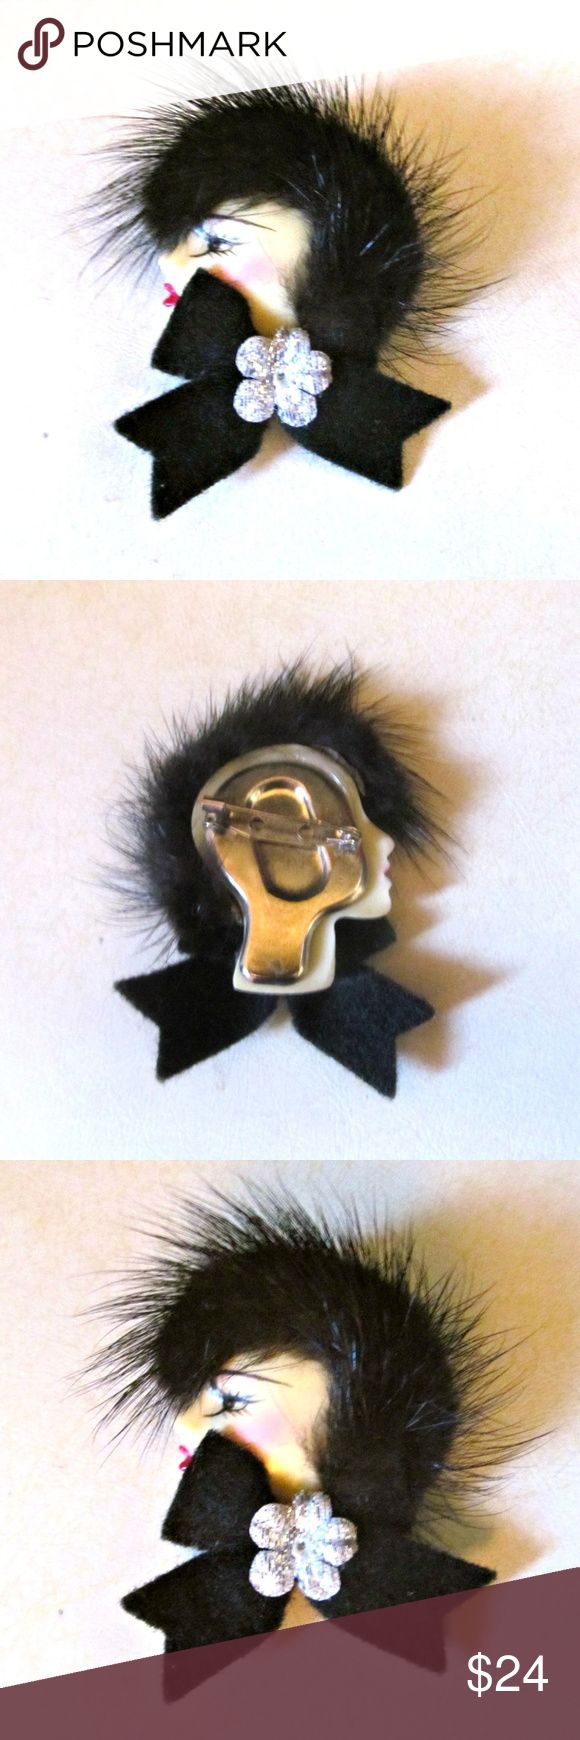 "Vintage Woman Real Fur Hair Brooch Pin Vintage Woman Real Mink Fur Hair Brooch Pin Very cool vintage brooch made of an early plastic with real fur for hair, a black felt ribbon and silver flower applique. Measures approx. 2.5"" in length Condition: Very good vintage. A tiny spot of glue residue on back of brooch. Smoke-free closet. Vintage Jewelry Brooches"